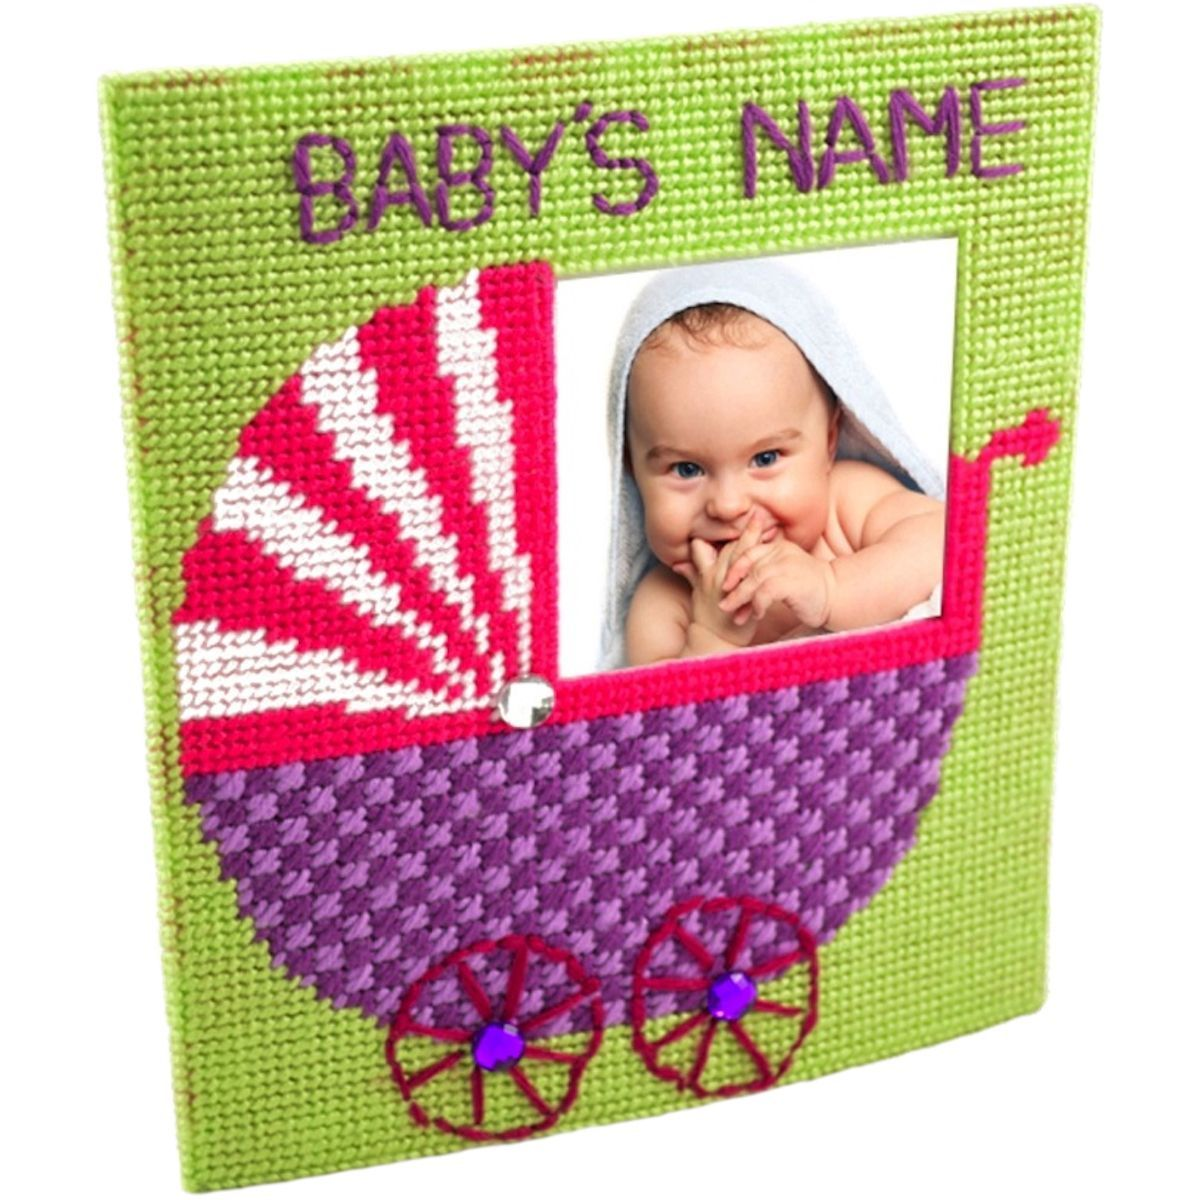 The Nanny Framous Plastic Canvas Kit 77x67 10 Count Products